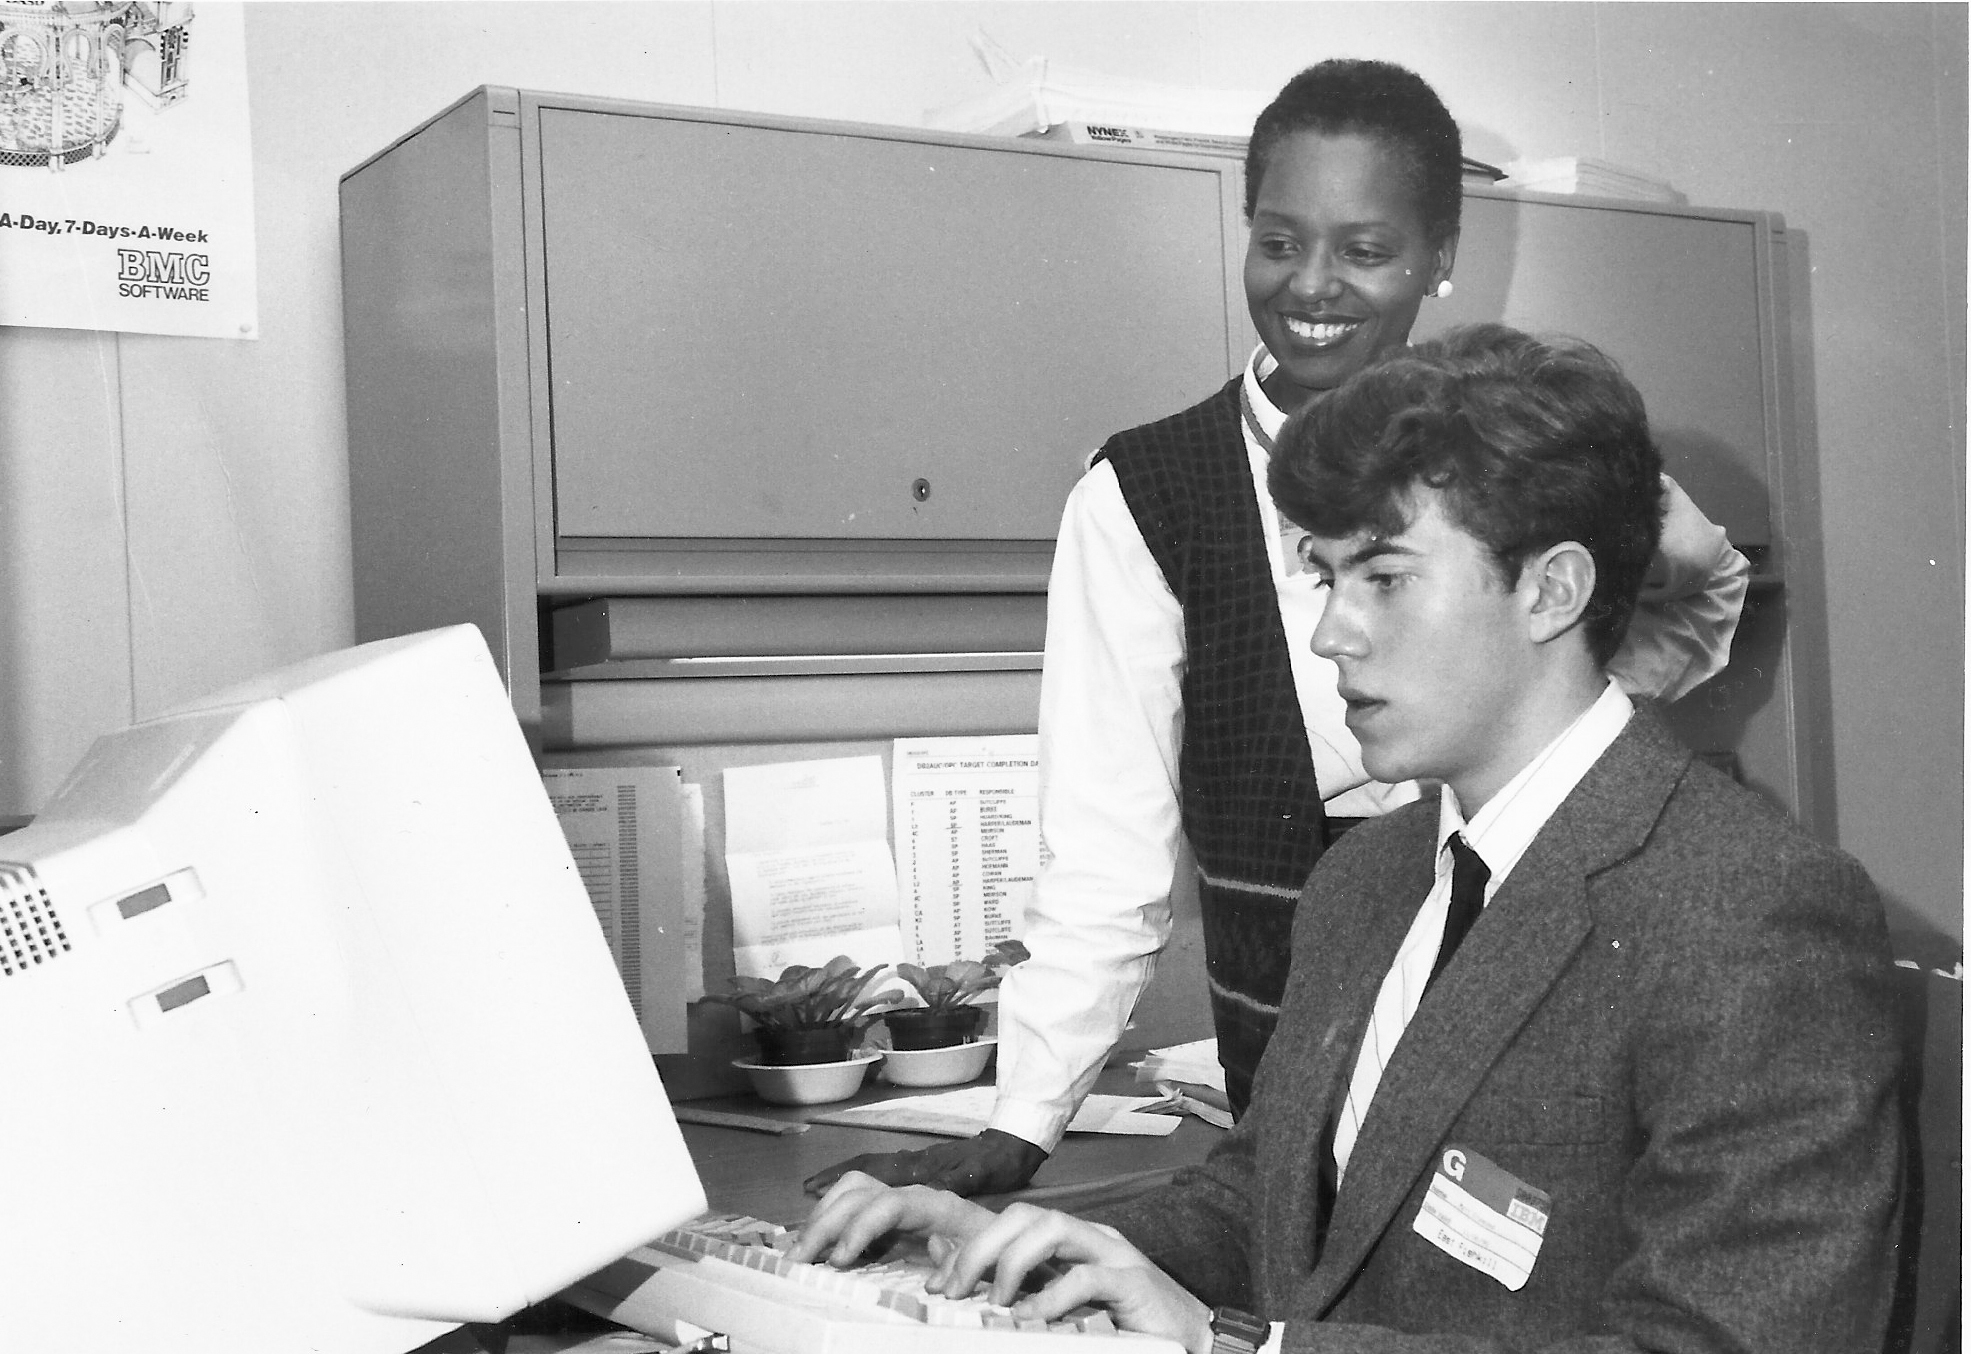 Jacqueline Harper (while working at IBM), joining us on October 3, 2019